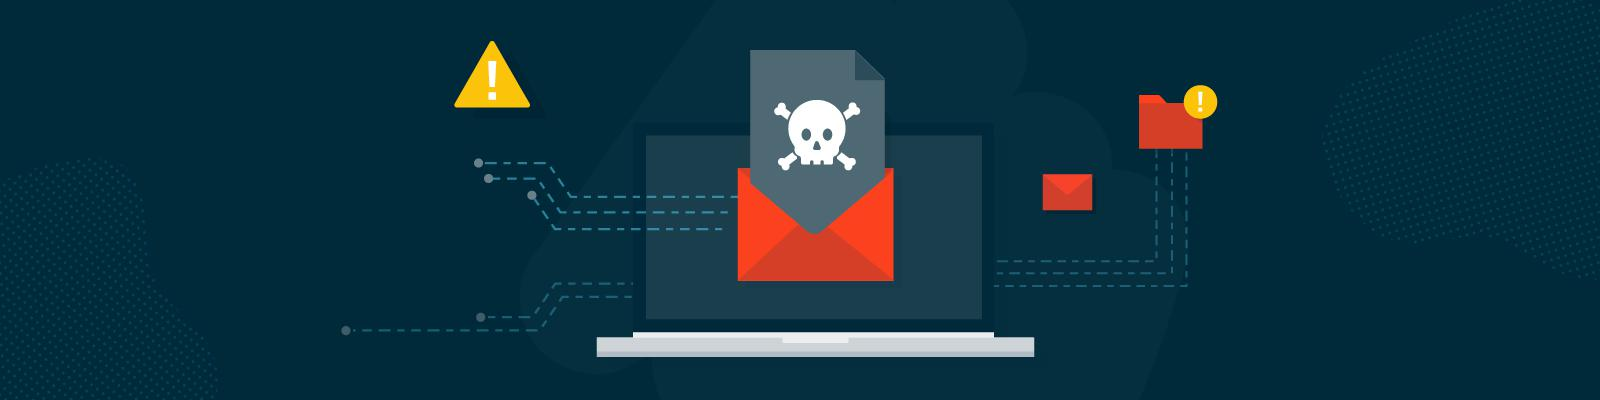 4 Ways to Prevent Ransomware